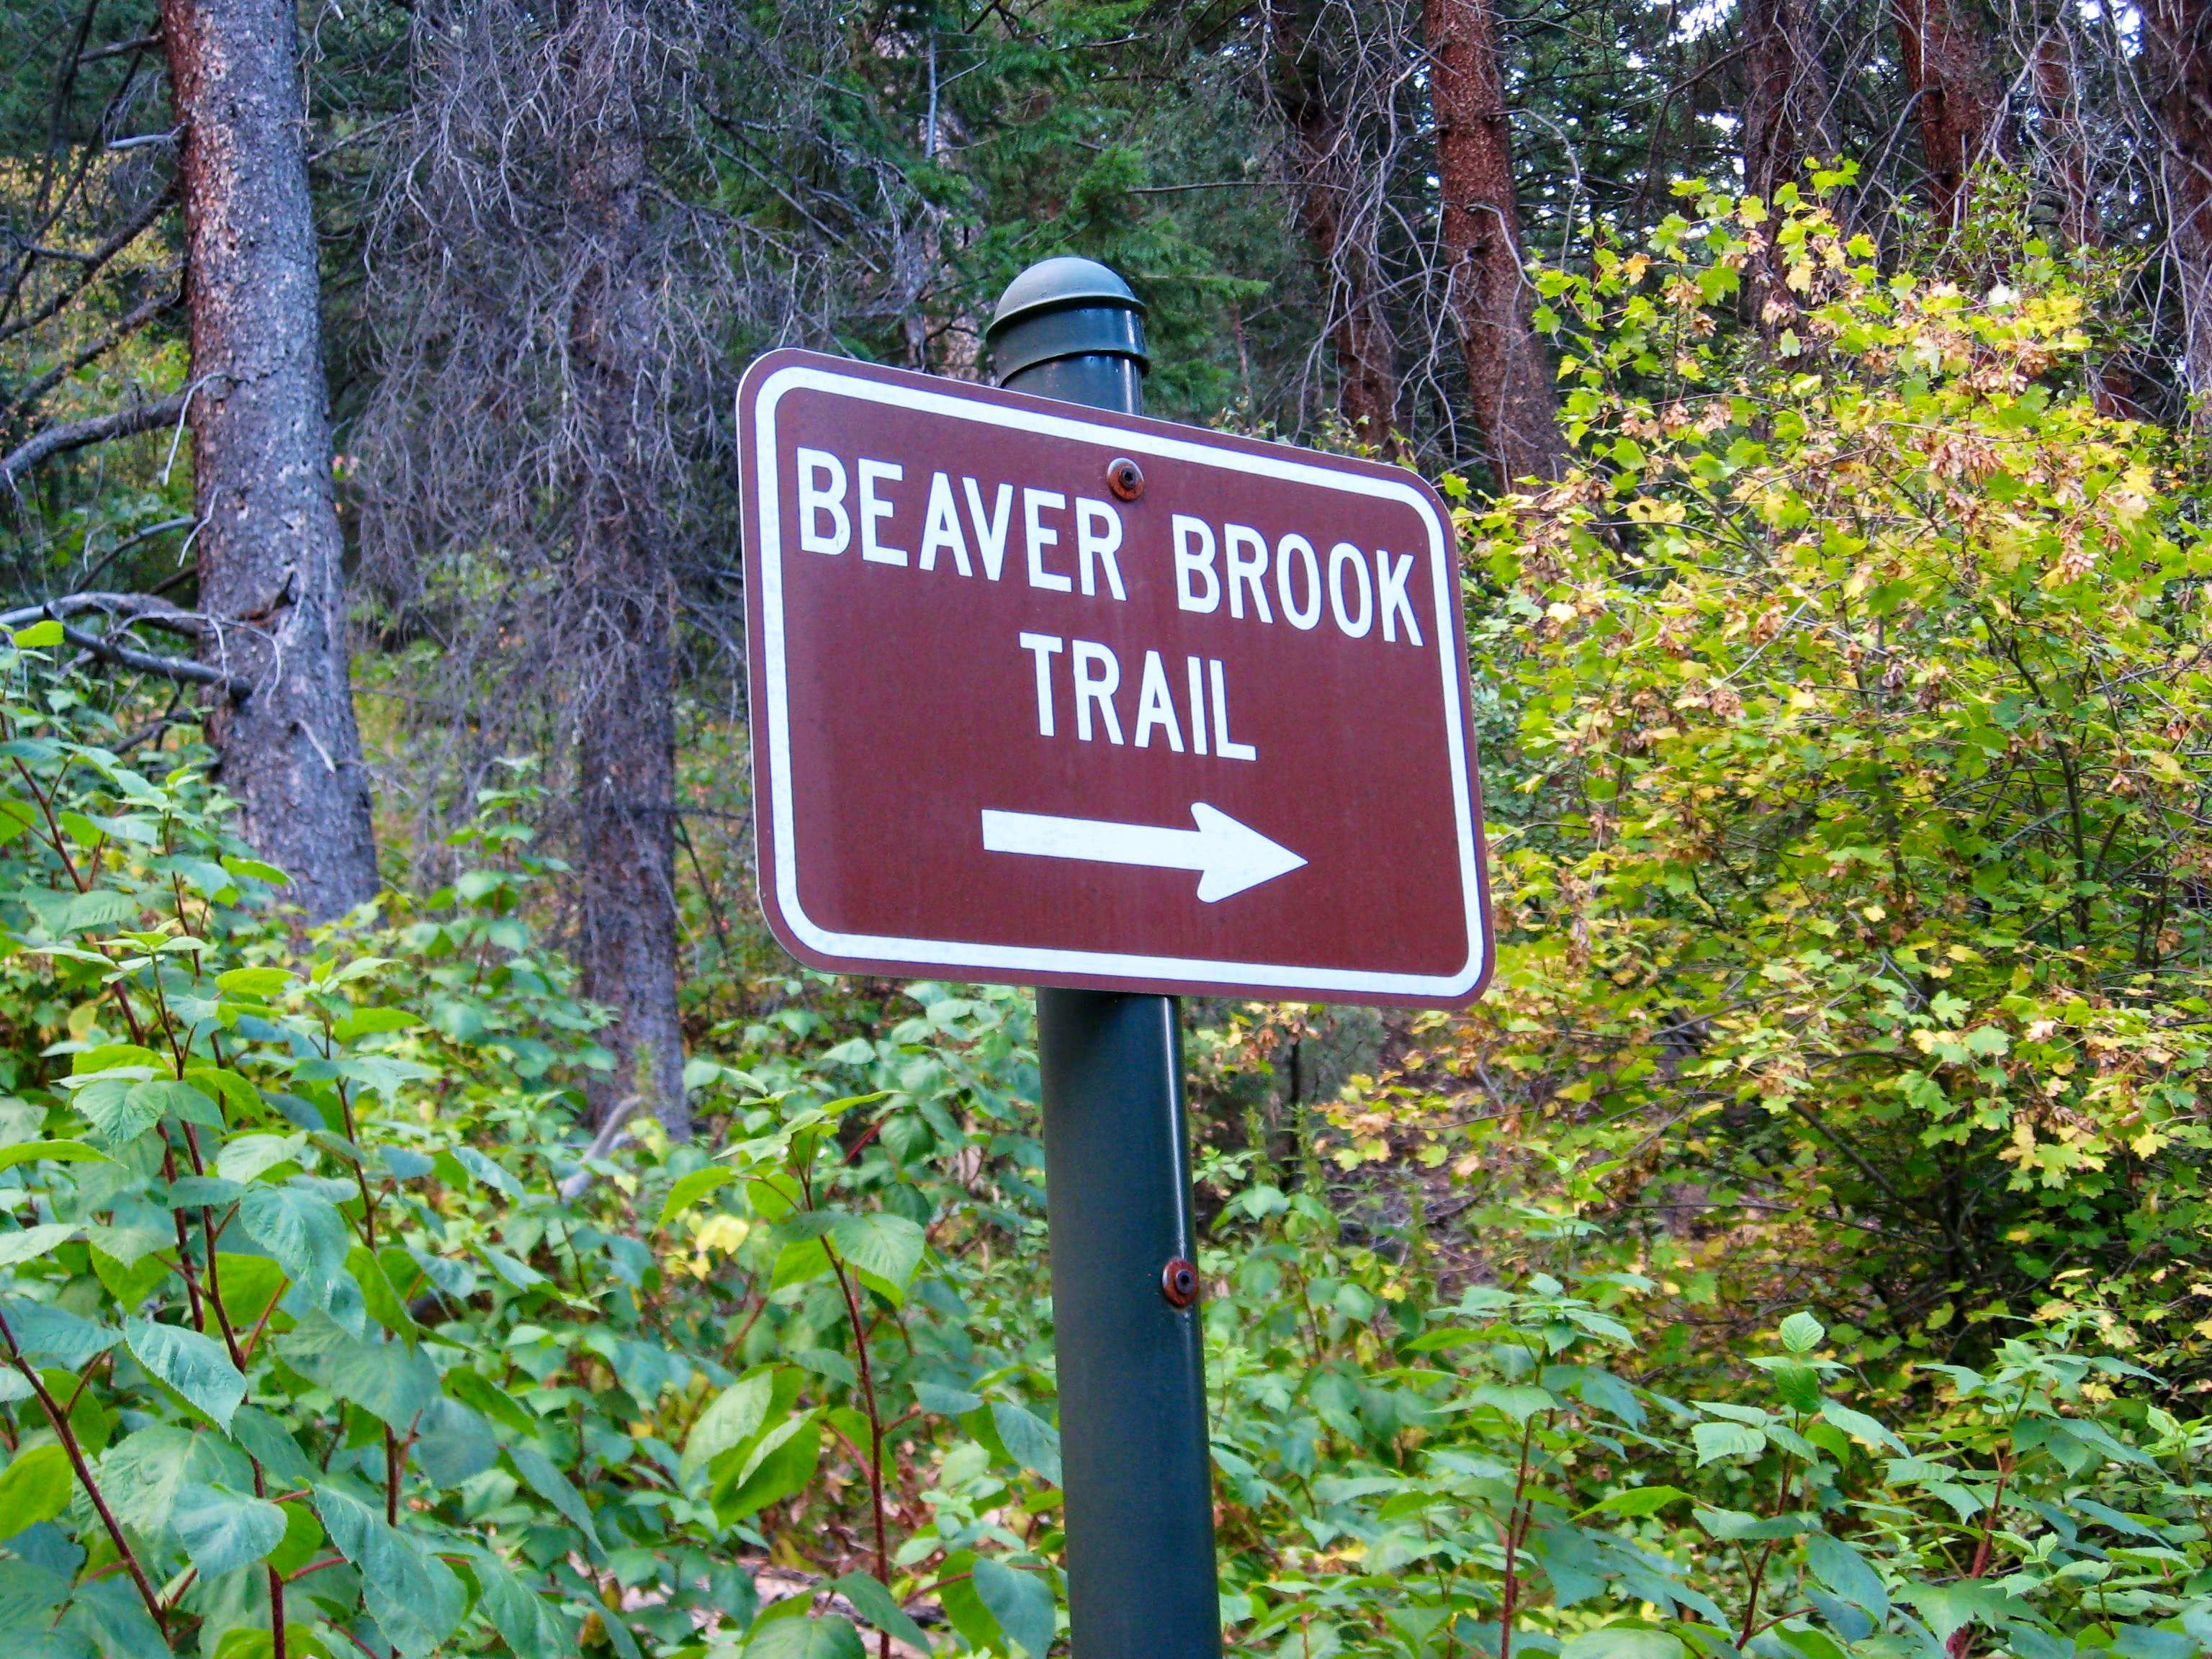 Beaver Brook Trail